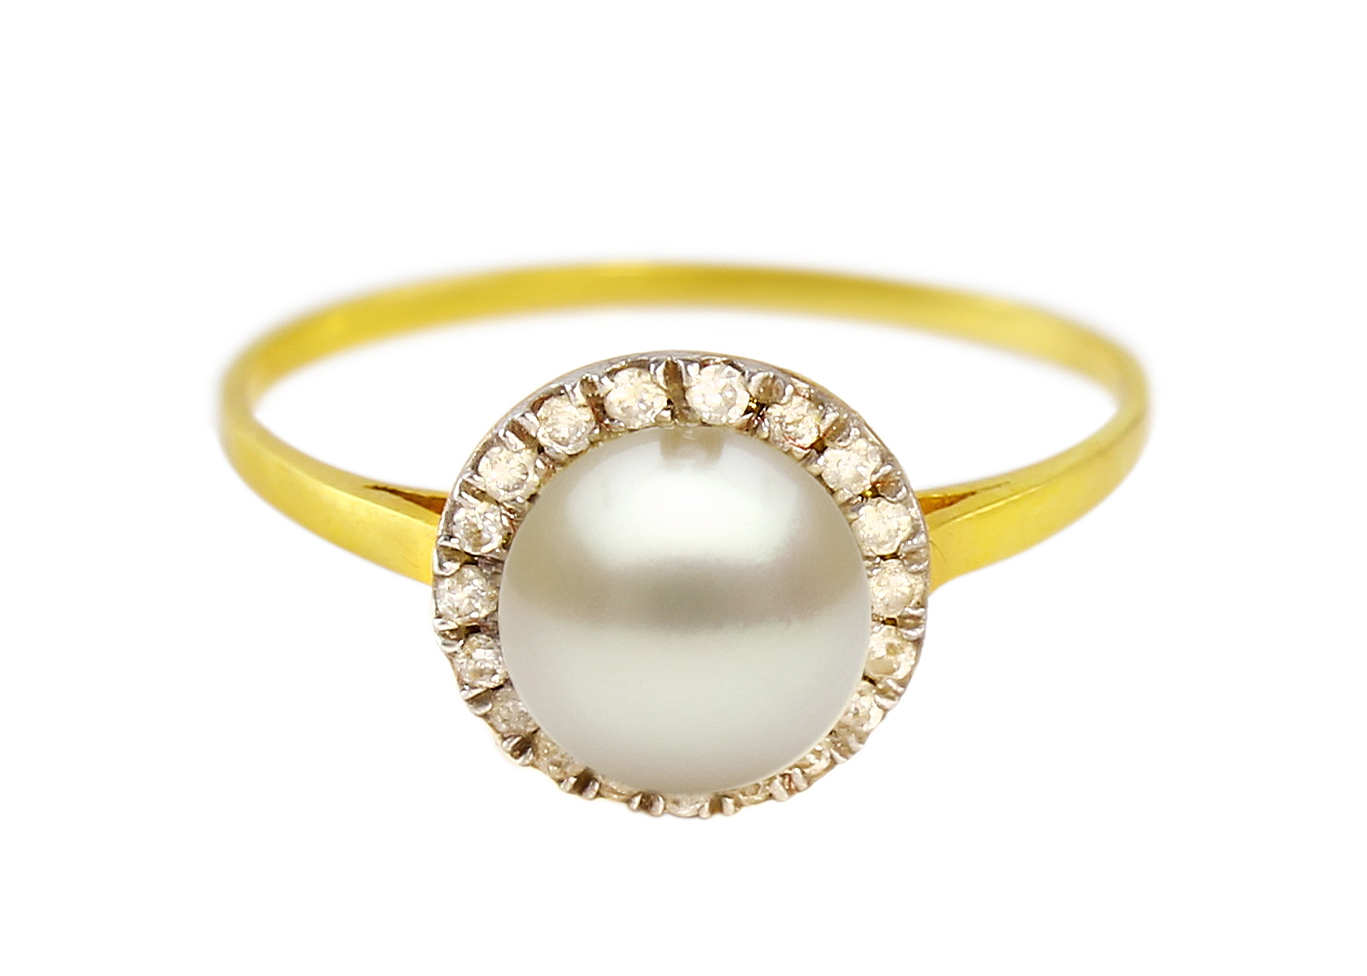 VP Jewels: 18K Solid Yellow Gold 0.10CT Genuine Diamonds  and 6mm Genuine Pearl Ring -SIZE 6 US